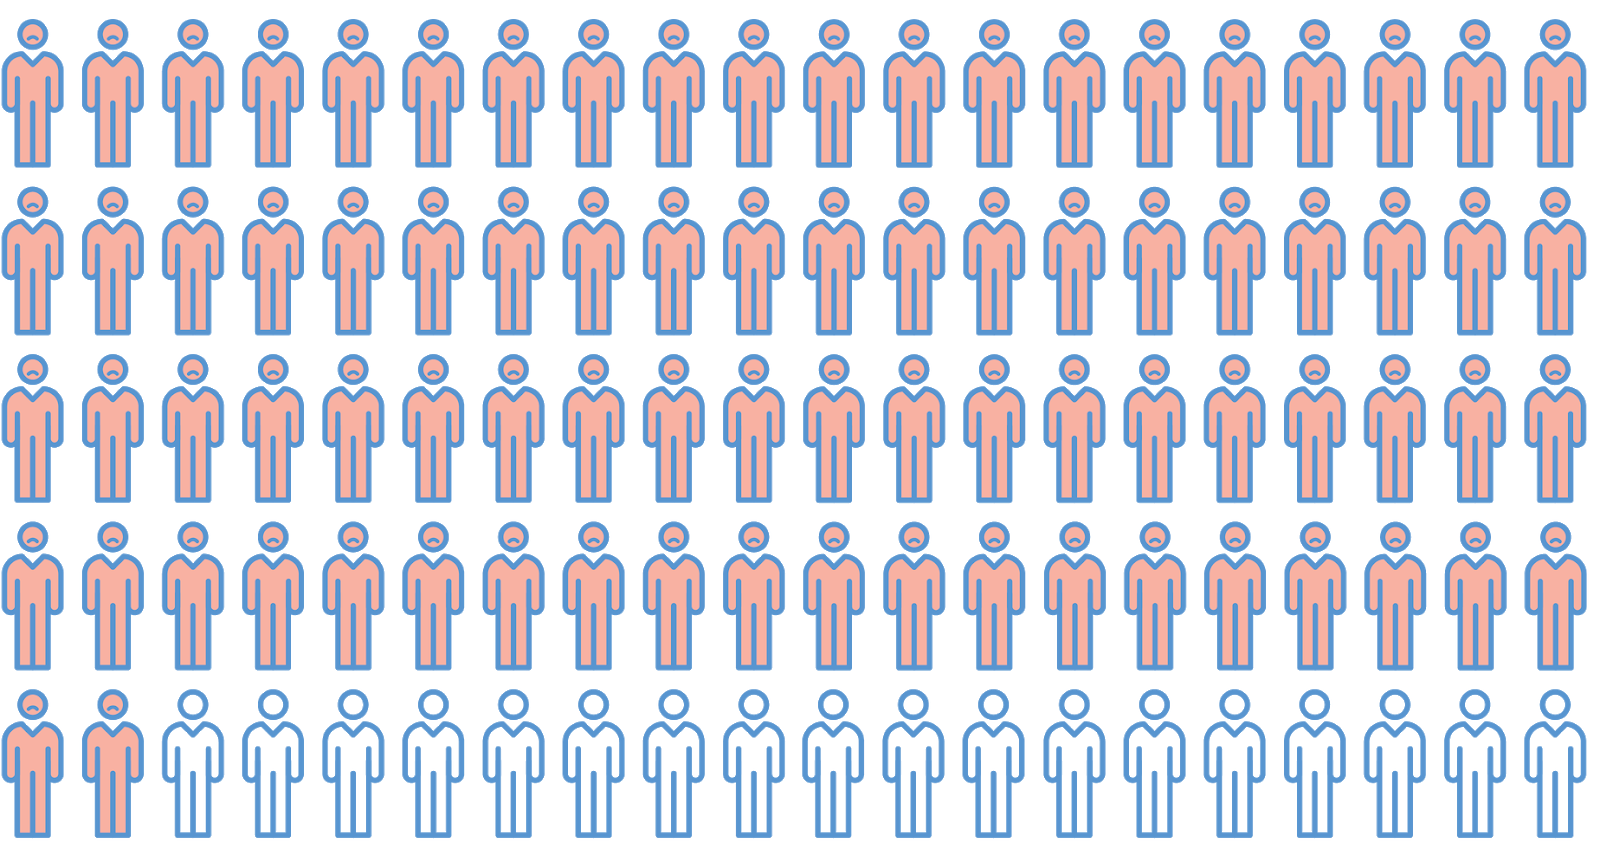 Dozens of stick figure people, where only a few are not colored in